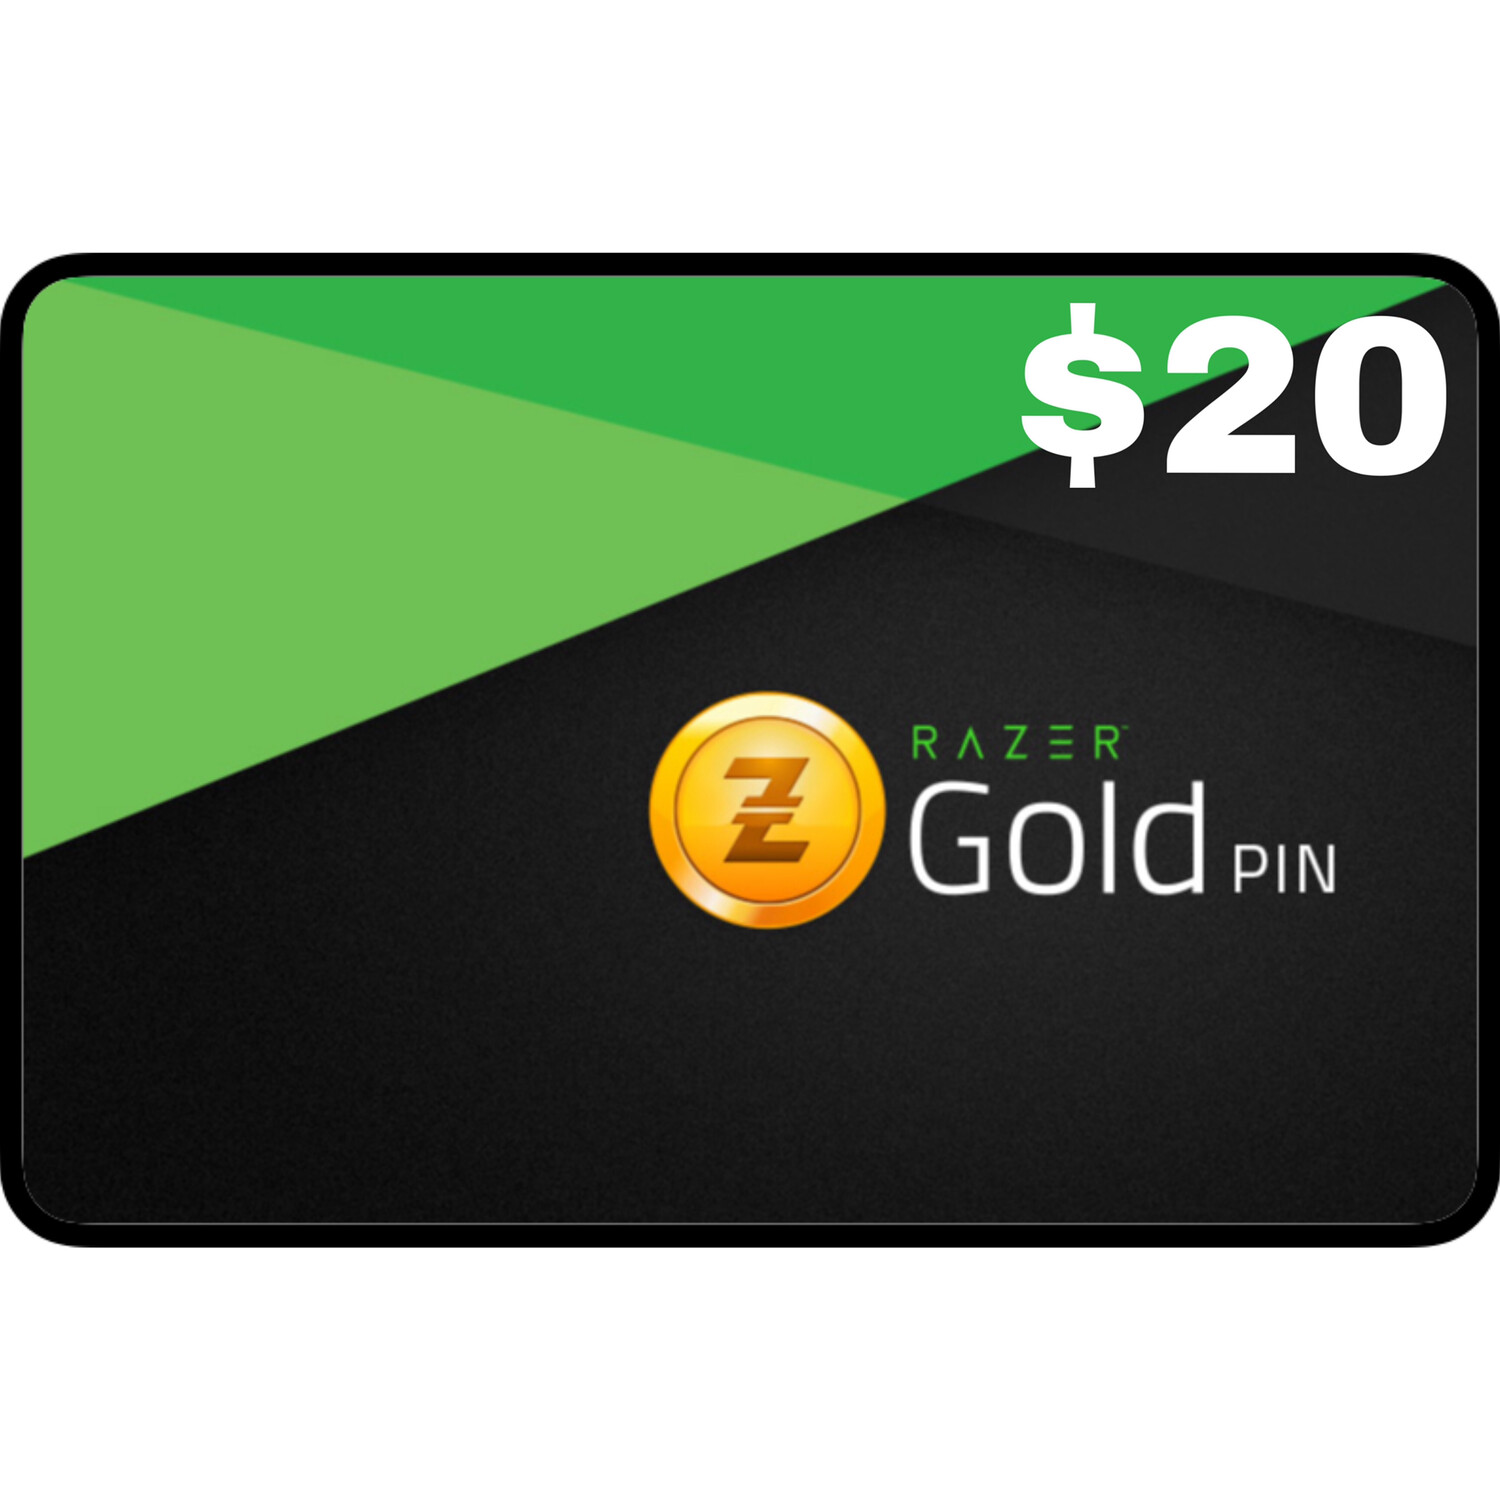 Razer Gold Pin $20 Global